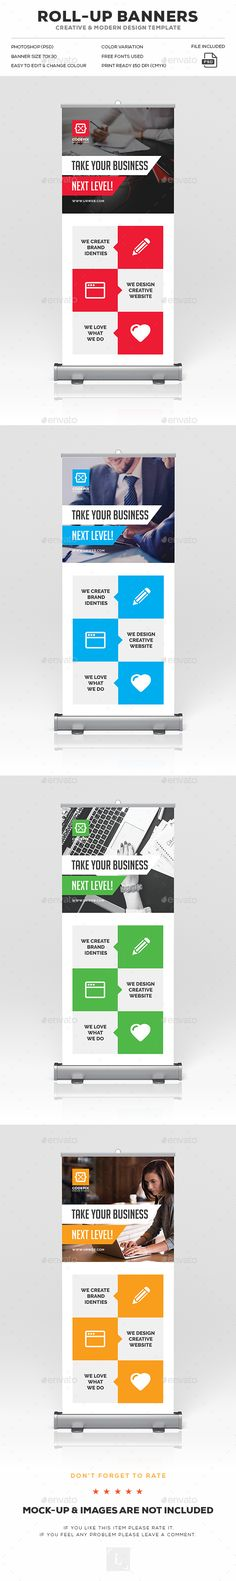 Corporate Roll-Up Banner Template PSD. Download here: https://graphicriver.net/item/corporate-rollup-banner/17029704?ref=ksioks